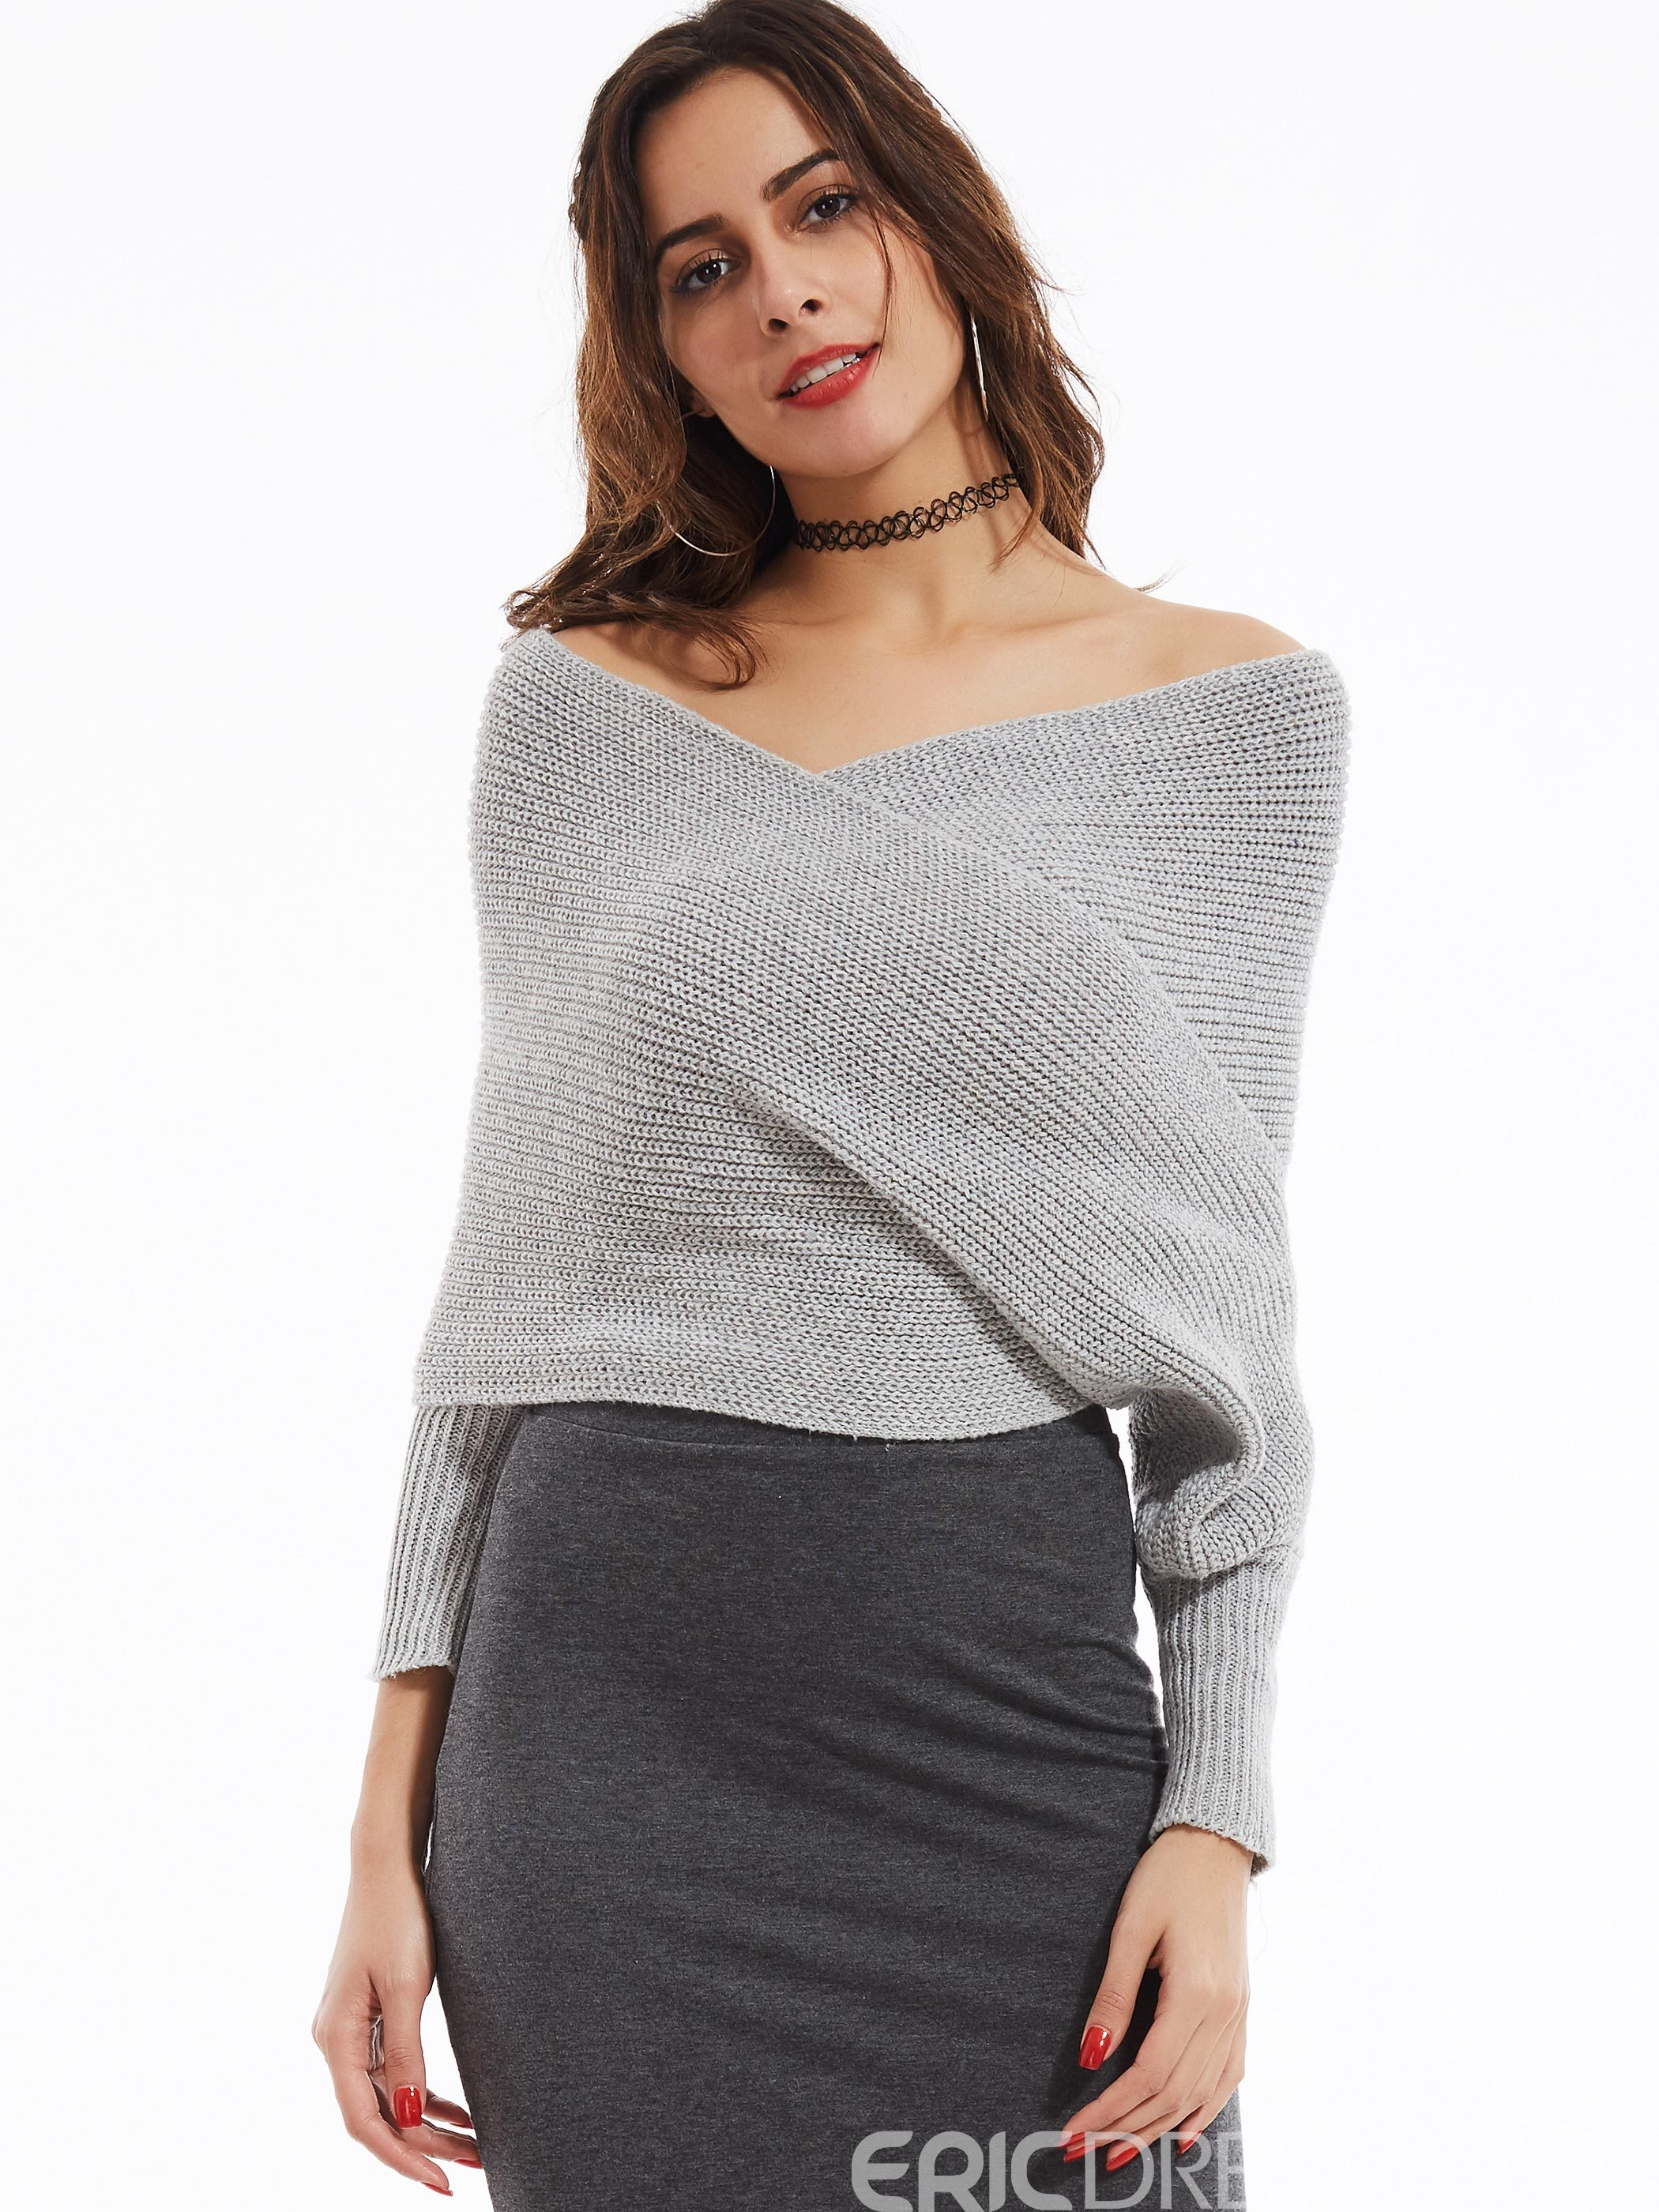 Ericdress V-neck Thick Plain Knitwear